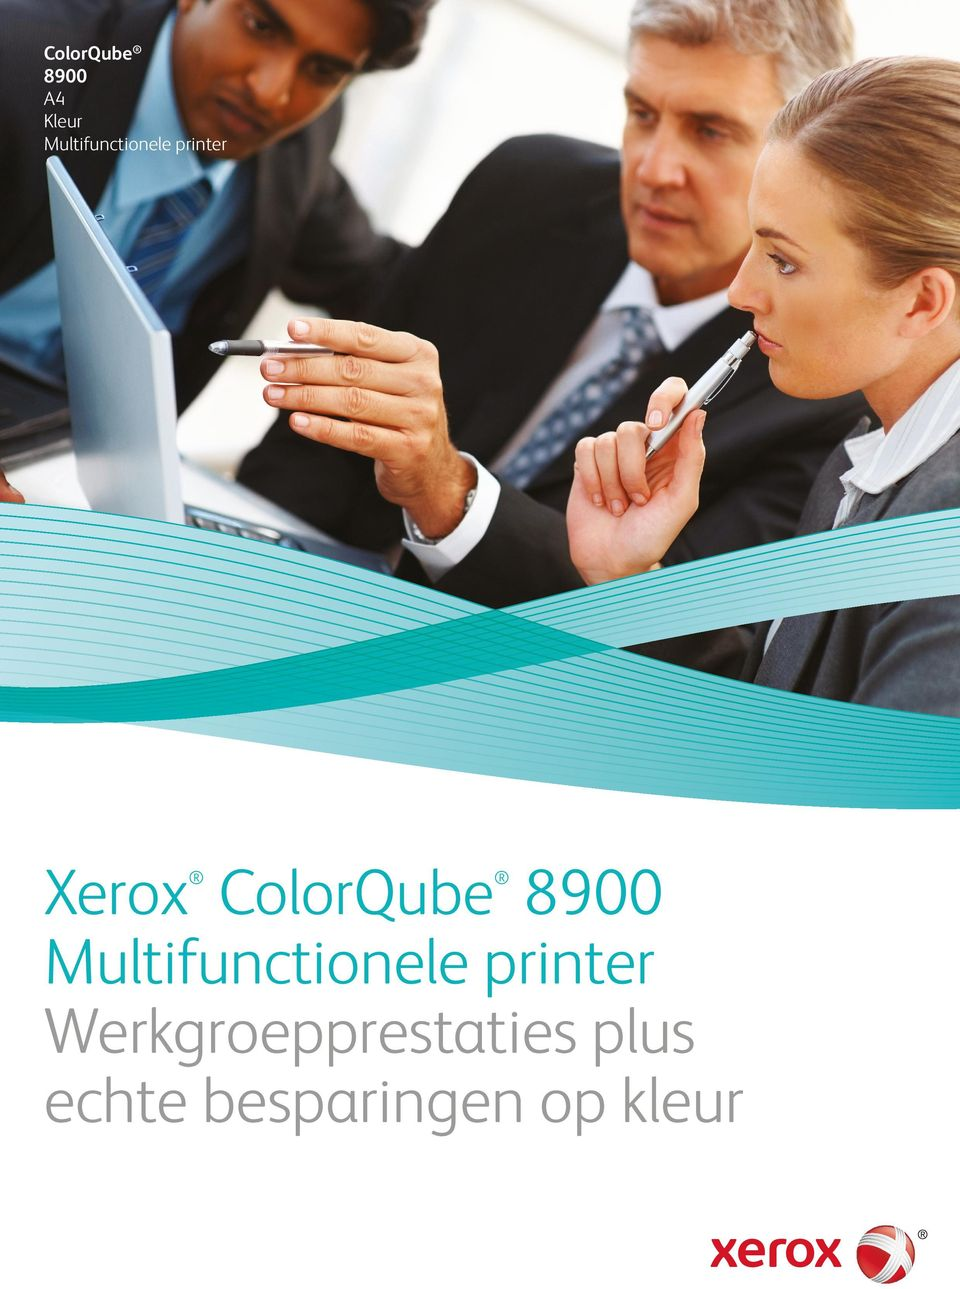 ColorQube 8900 Multifunctionele